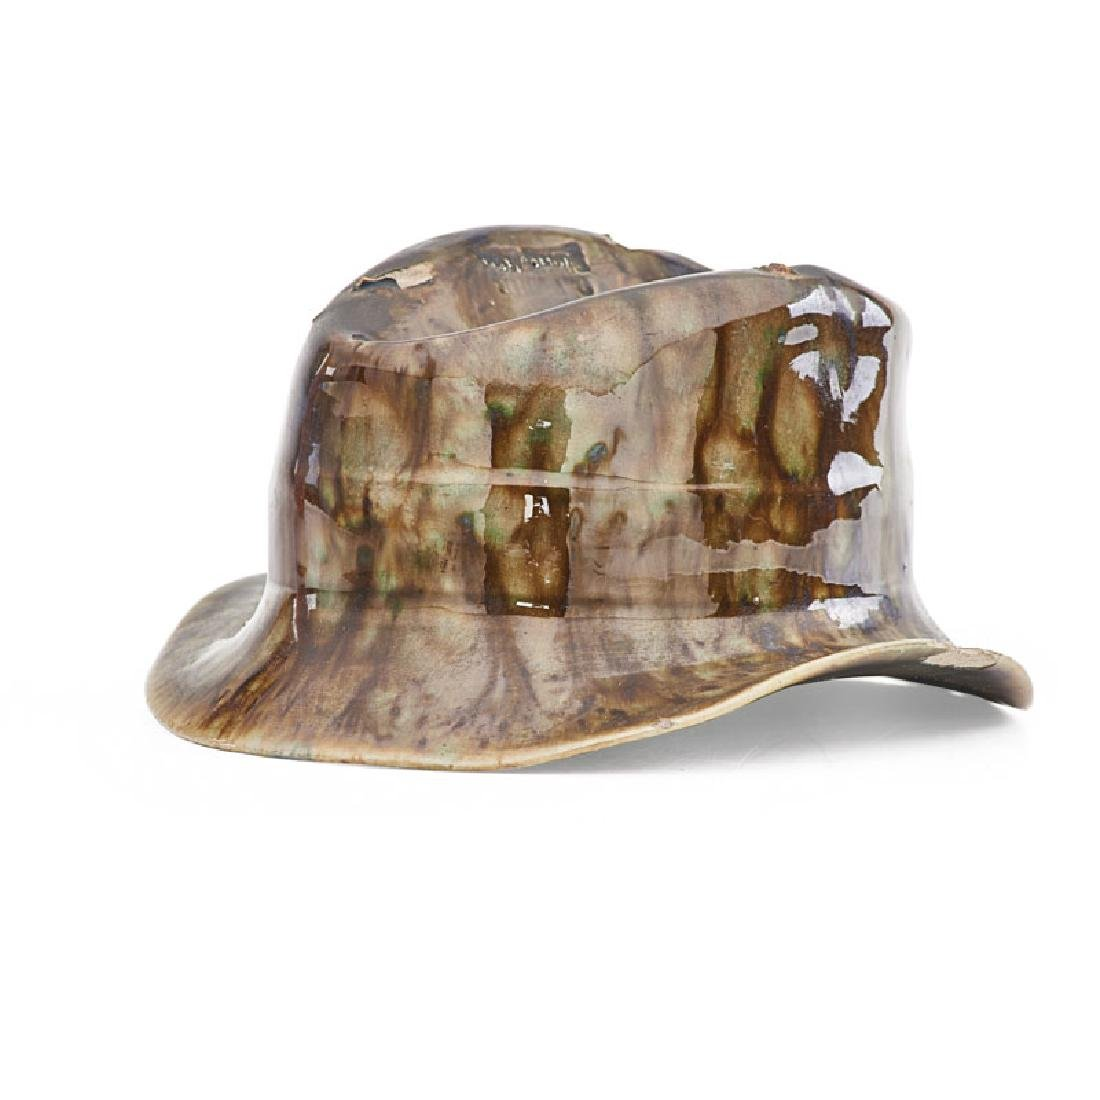 GEORGE OHR Hat novelty